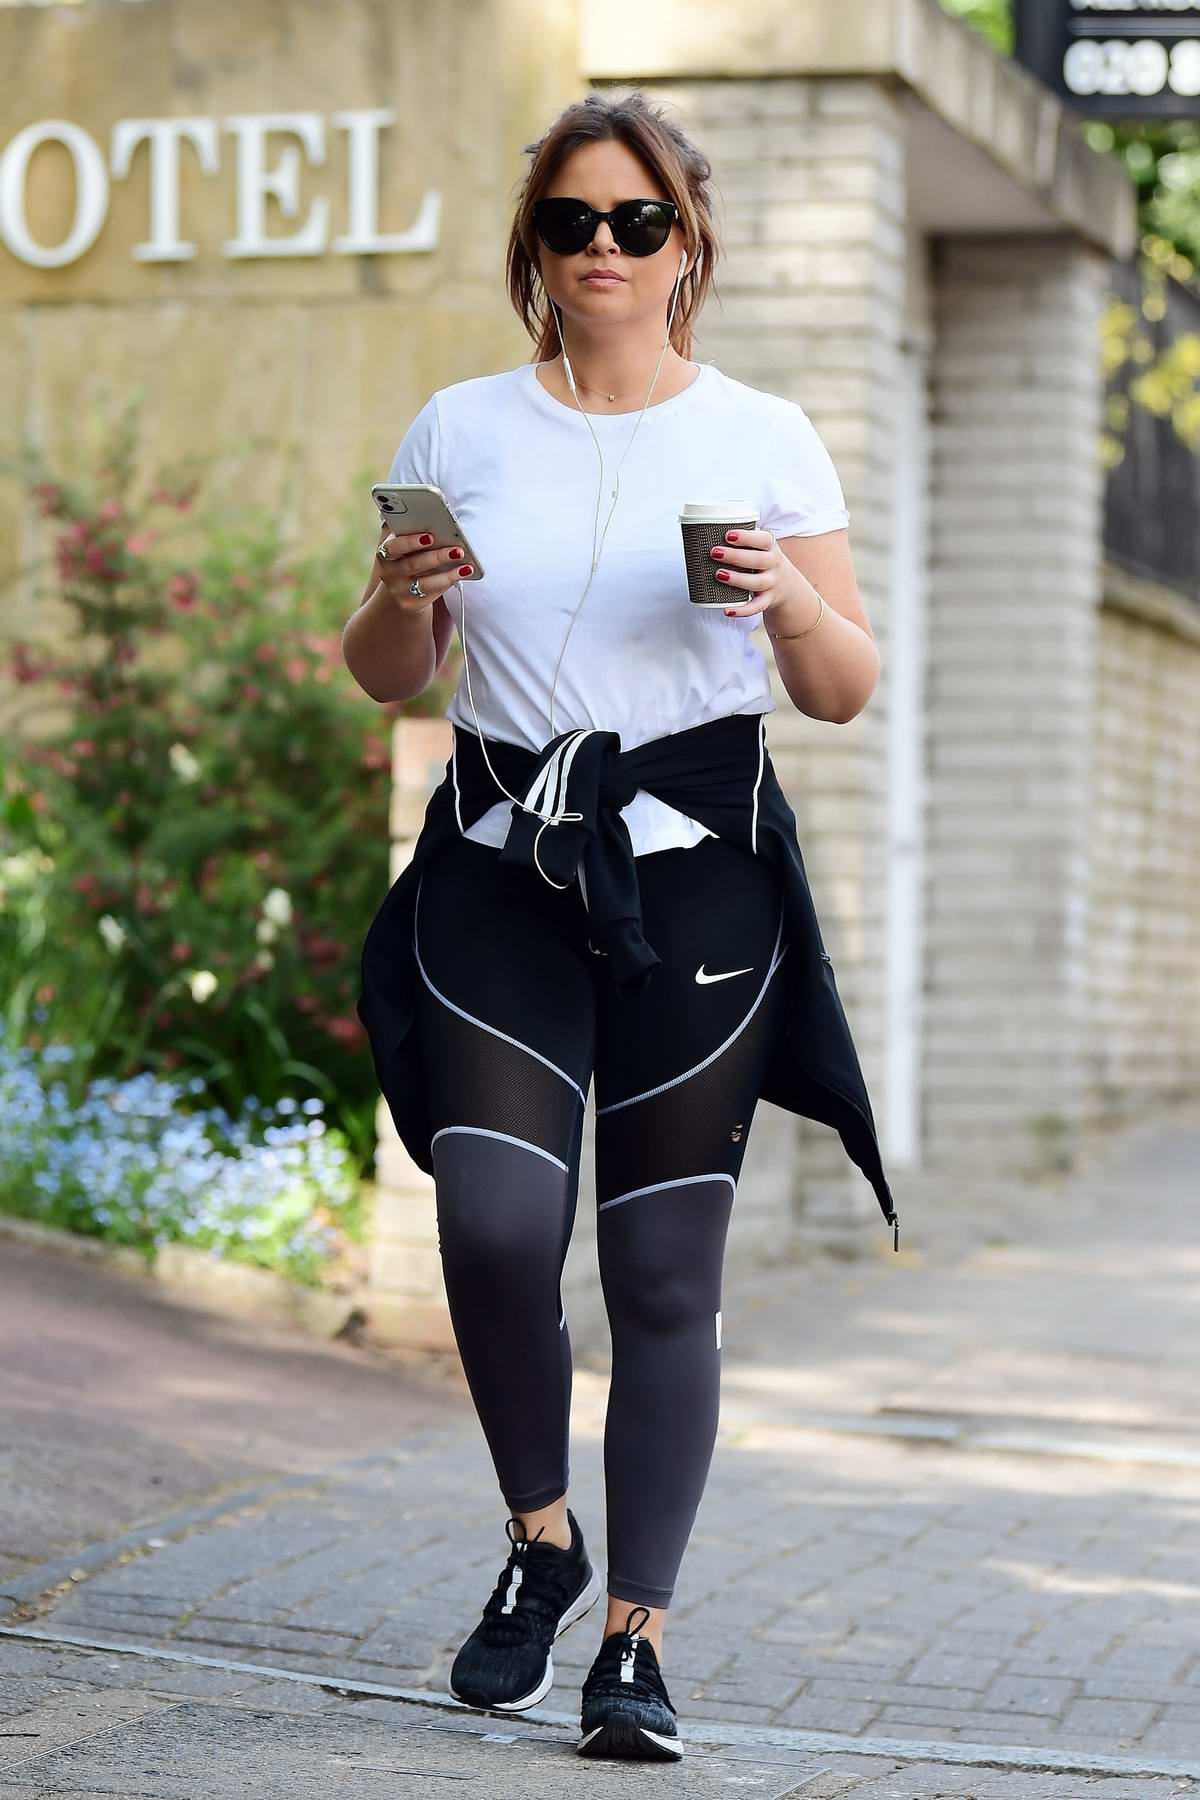 Emily Atack sports a white top and Nike leggings while out for a walk during the lockdown in London, UK